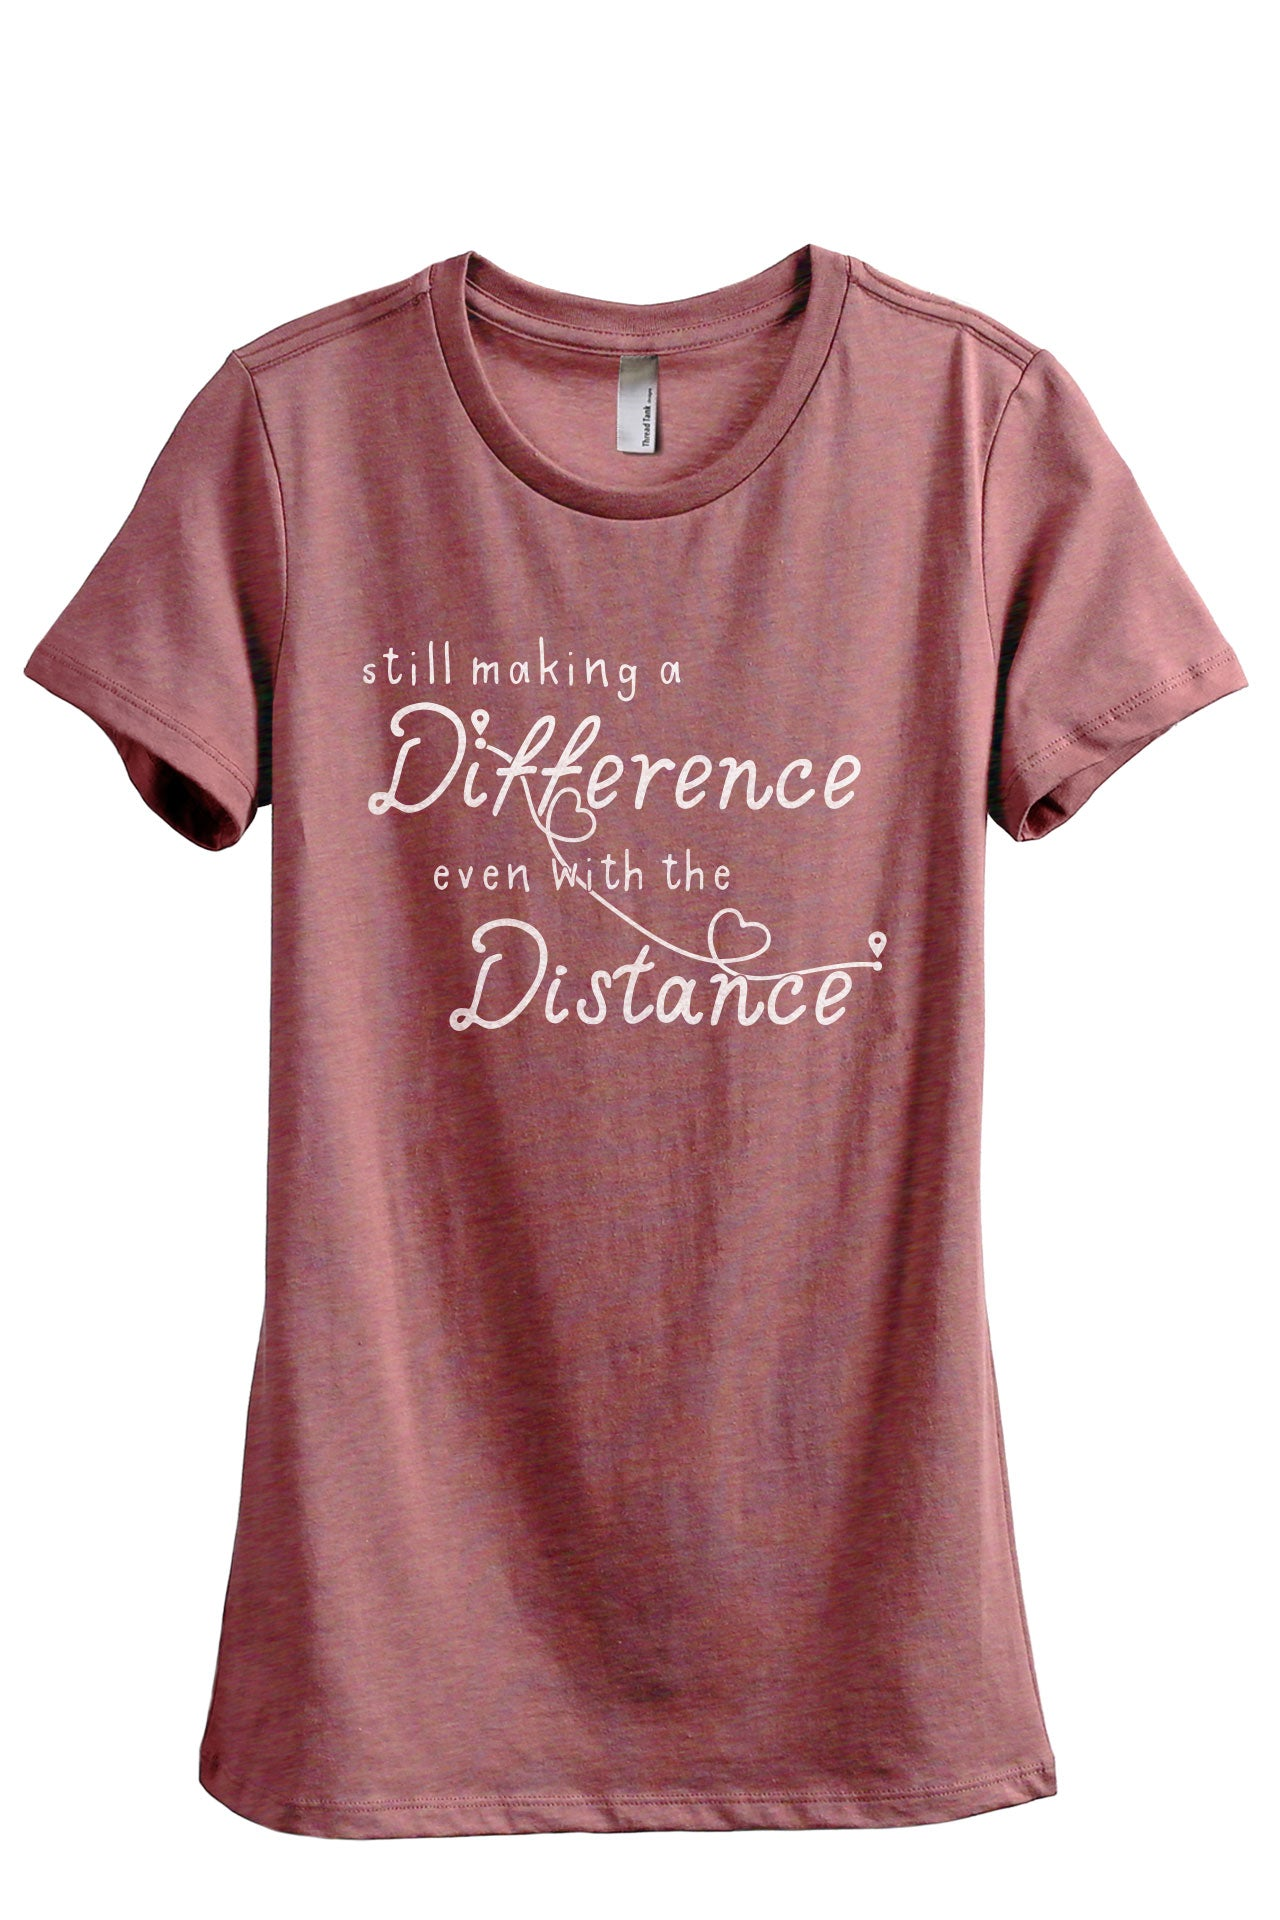 Still Making A Difference Even With The Distance Women's Relaxed Crewneck T-Shirt Top Tee Heather Rouge Grey